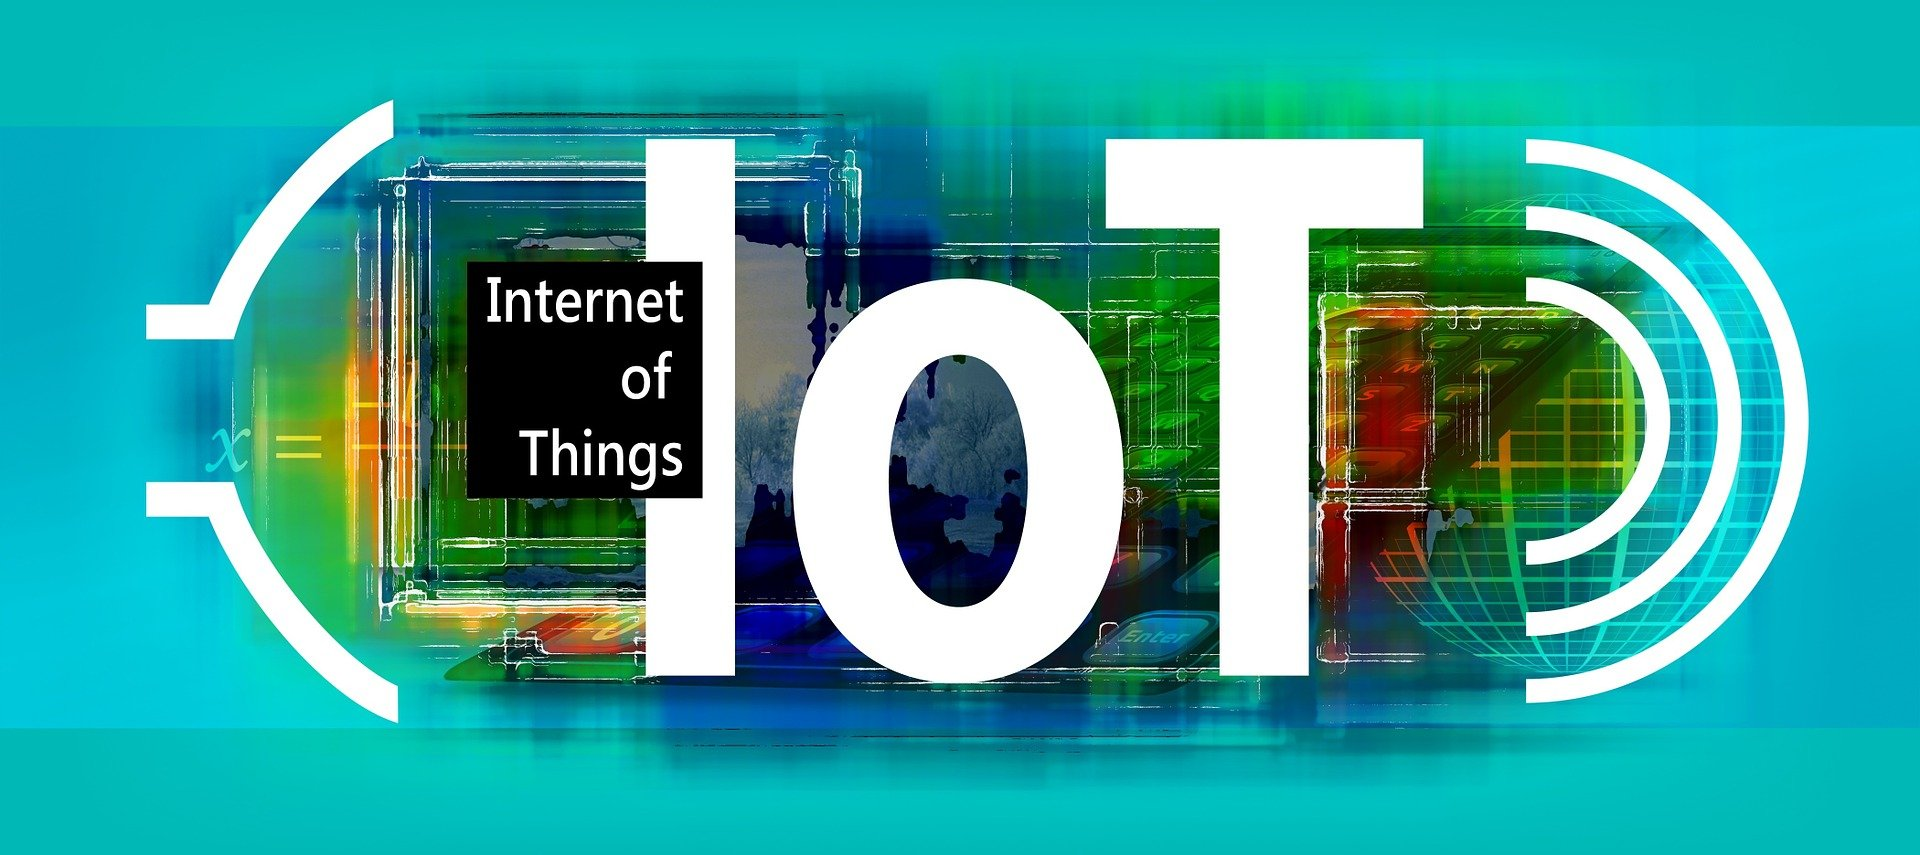 NC startups show how deeply Internet of Things is penetrating our economy